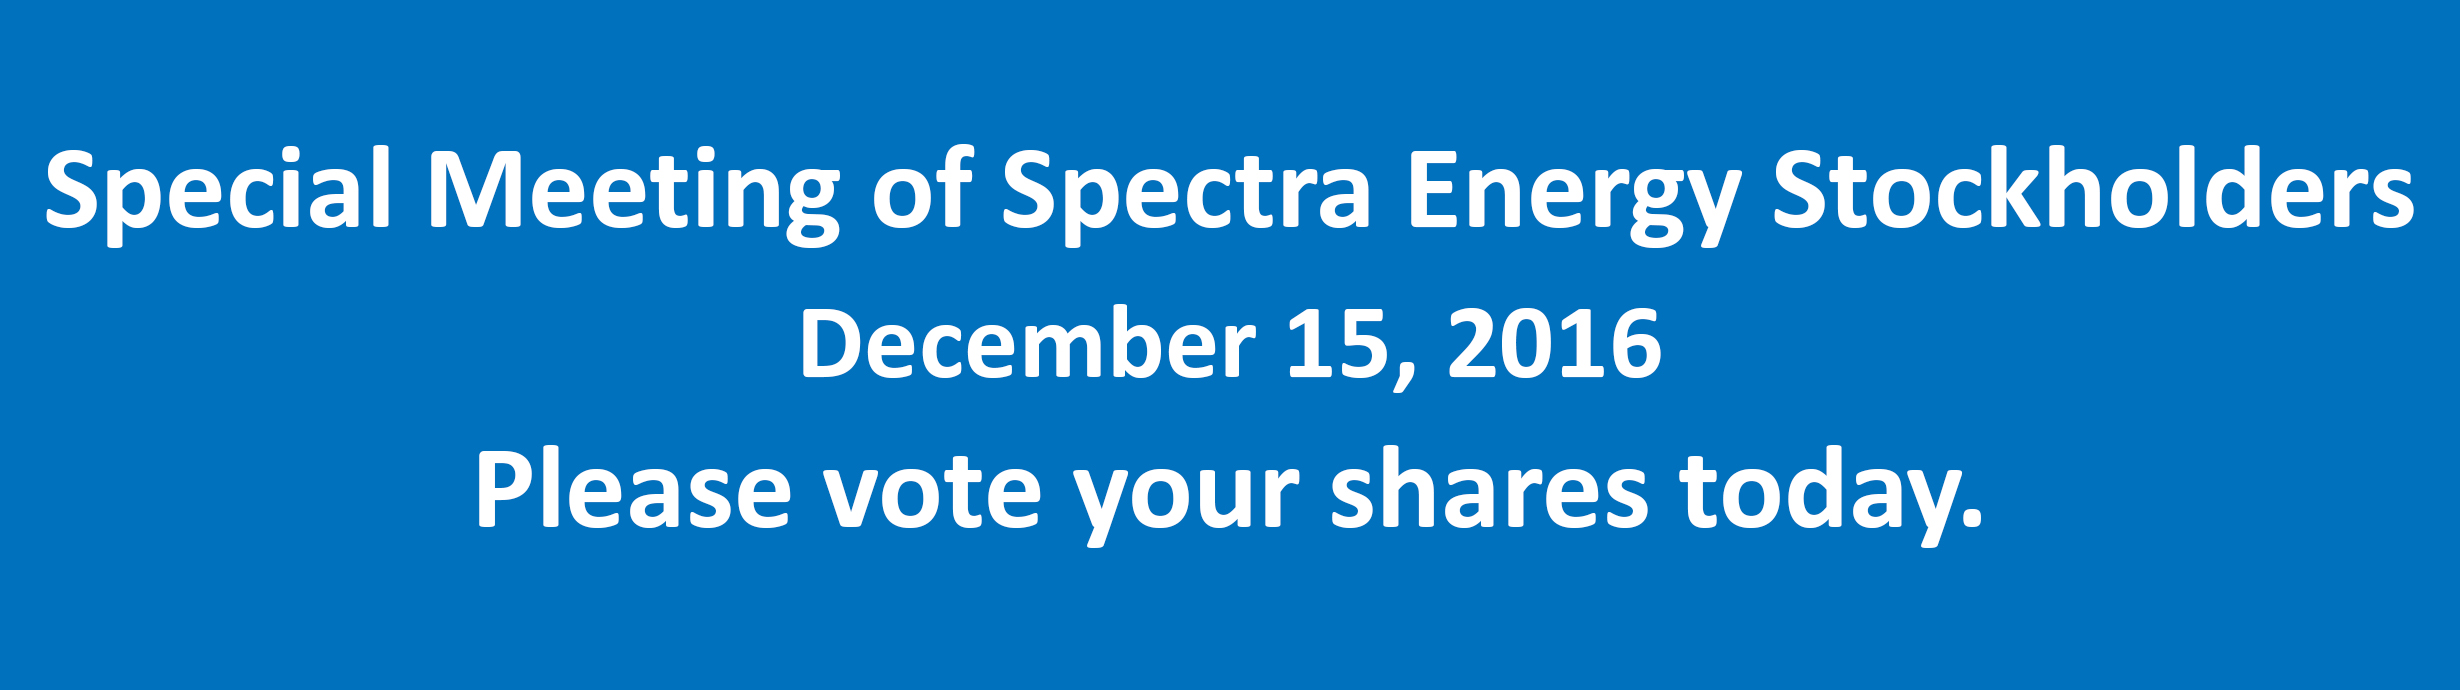 Spectra Special Meeting Slider